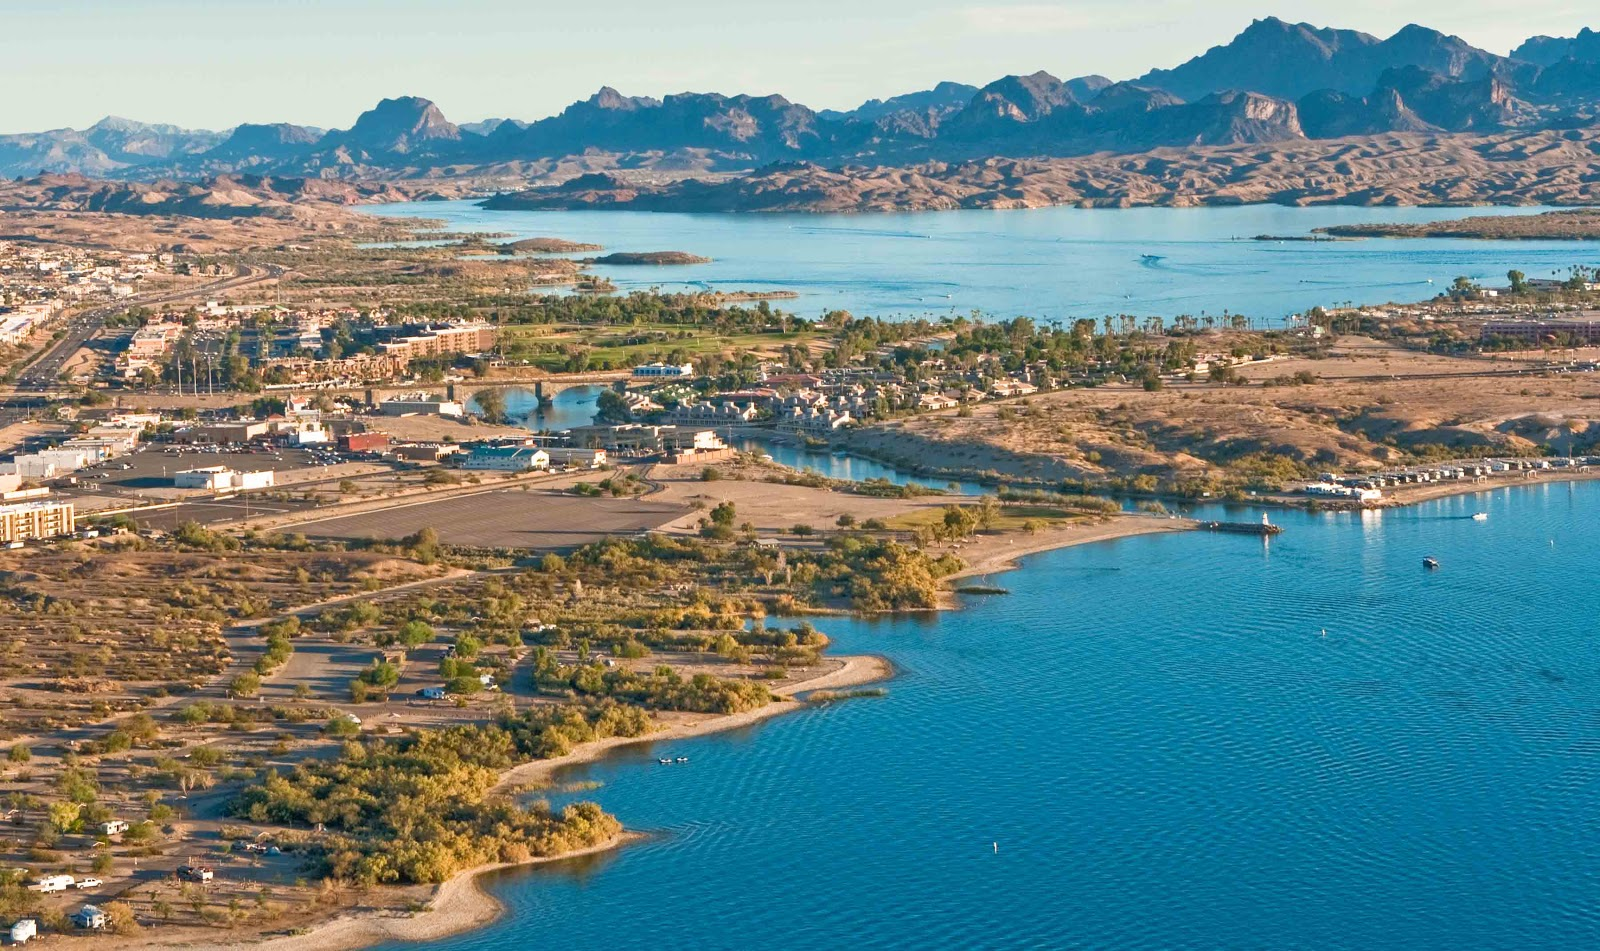 Vacation Homes In Lake Havasu City